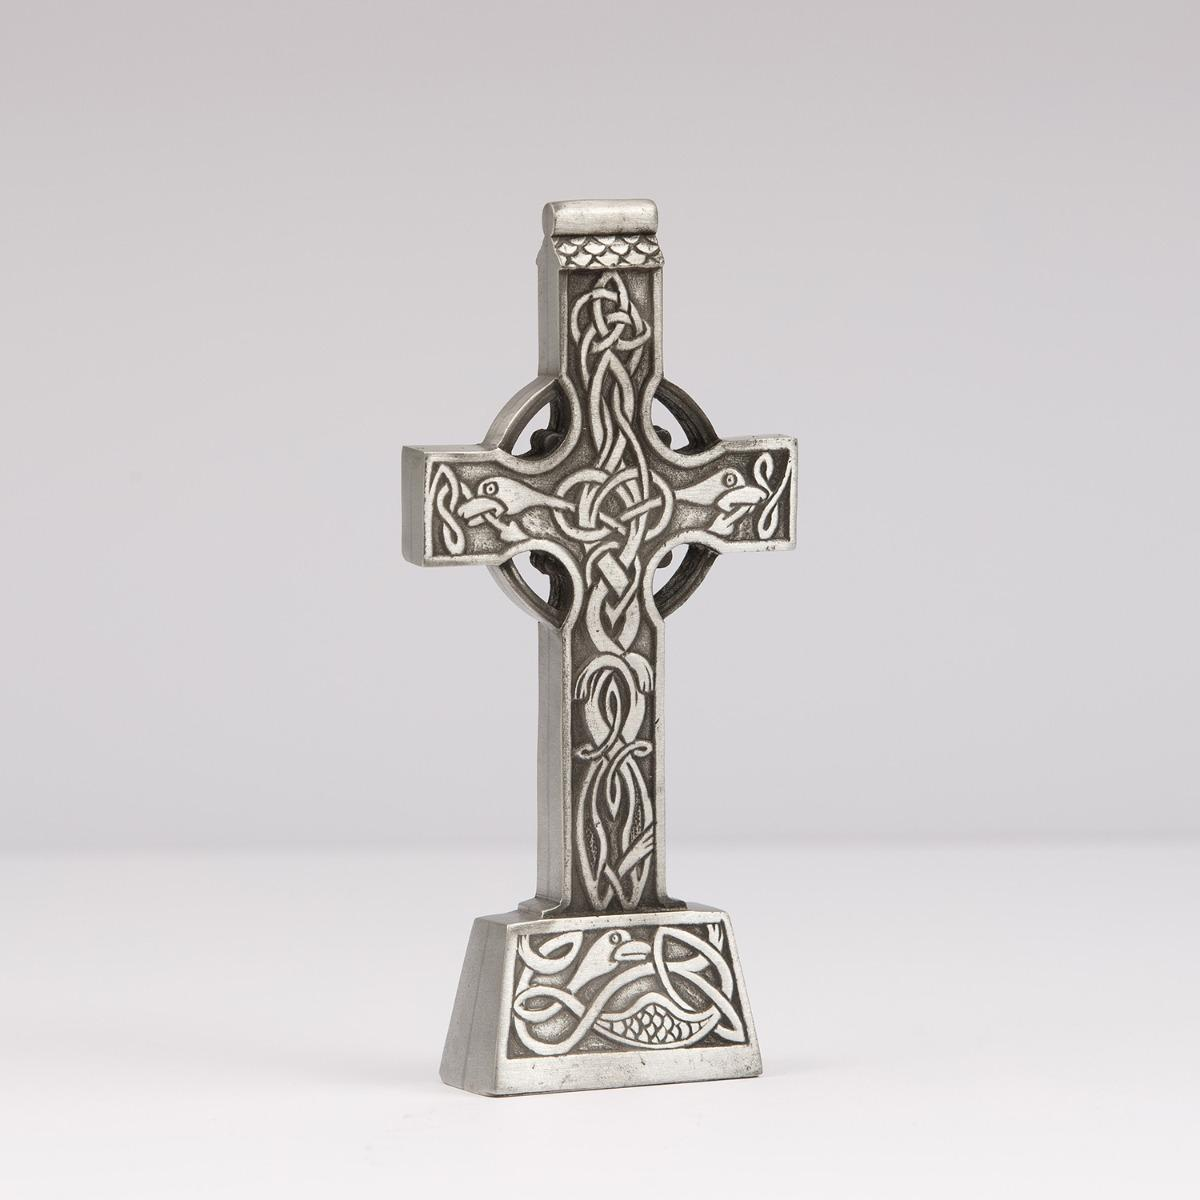 Mullingar Pewter Celtic Cross Ornament Irish homeware